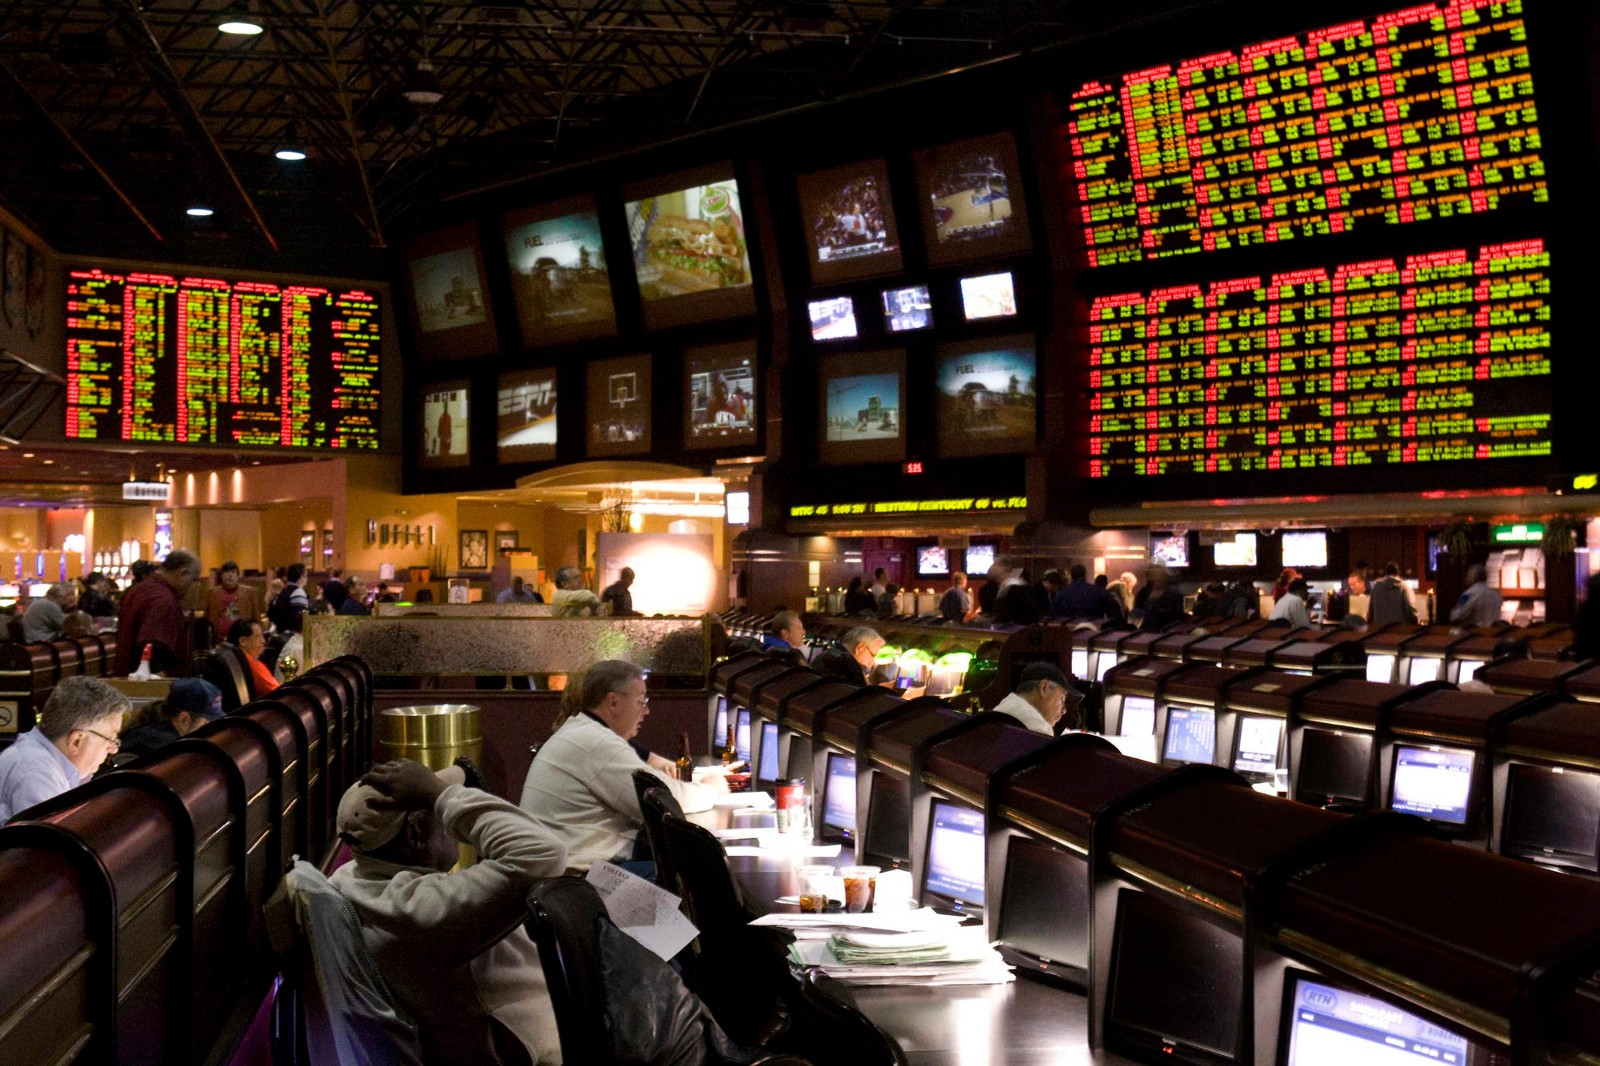 Betting on nfl games in las vegas 1 minute binary options to win